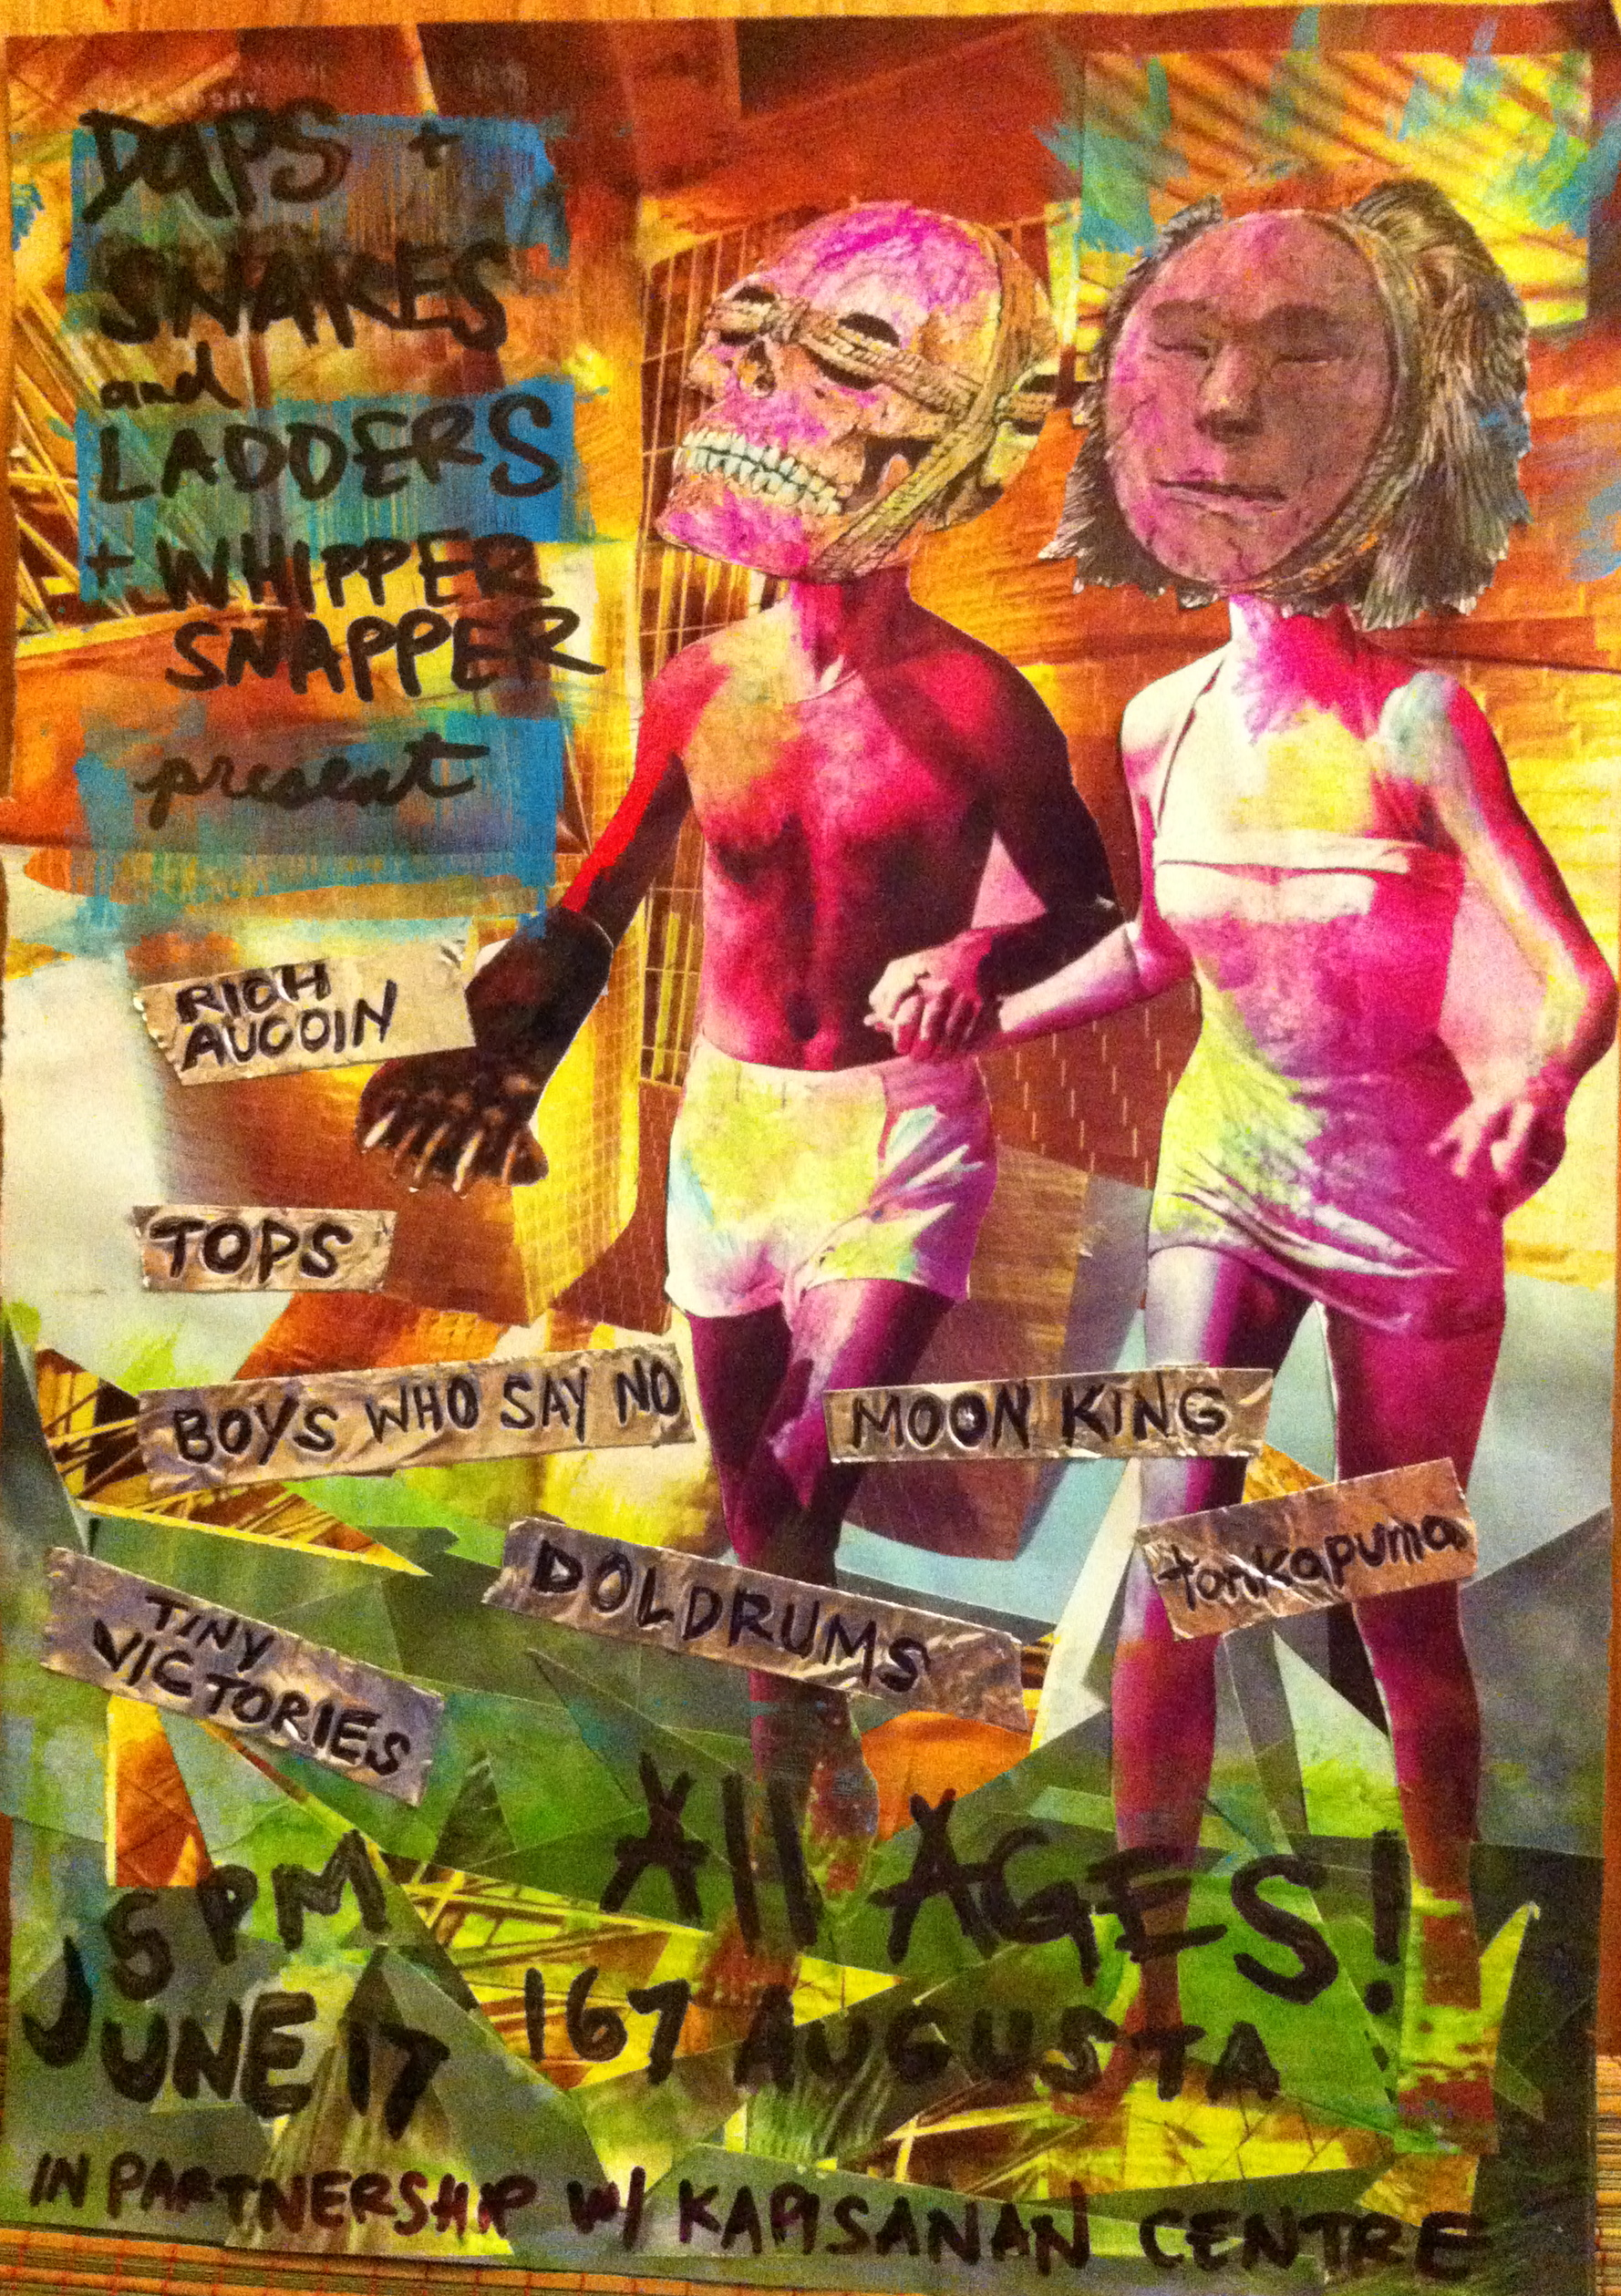 Poster for Daps All Ages show + BBQ, in partnership with Whipper Snapper Gallery, and Snakes and Ladders